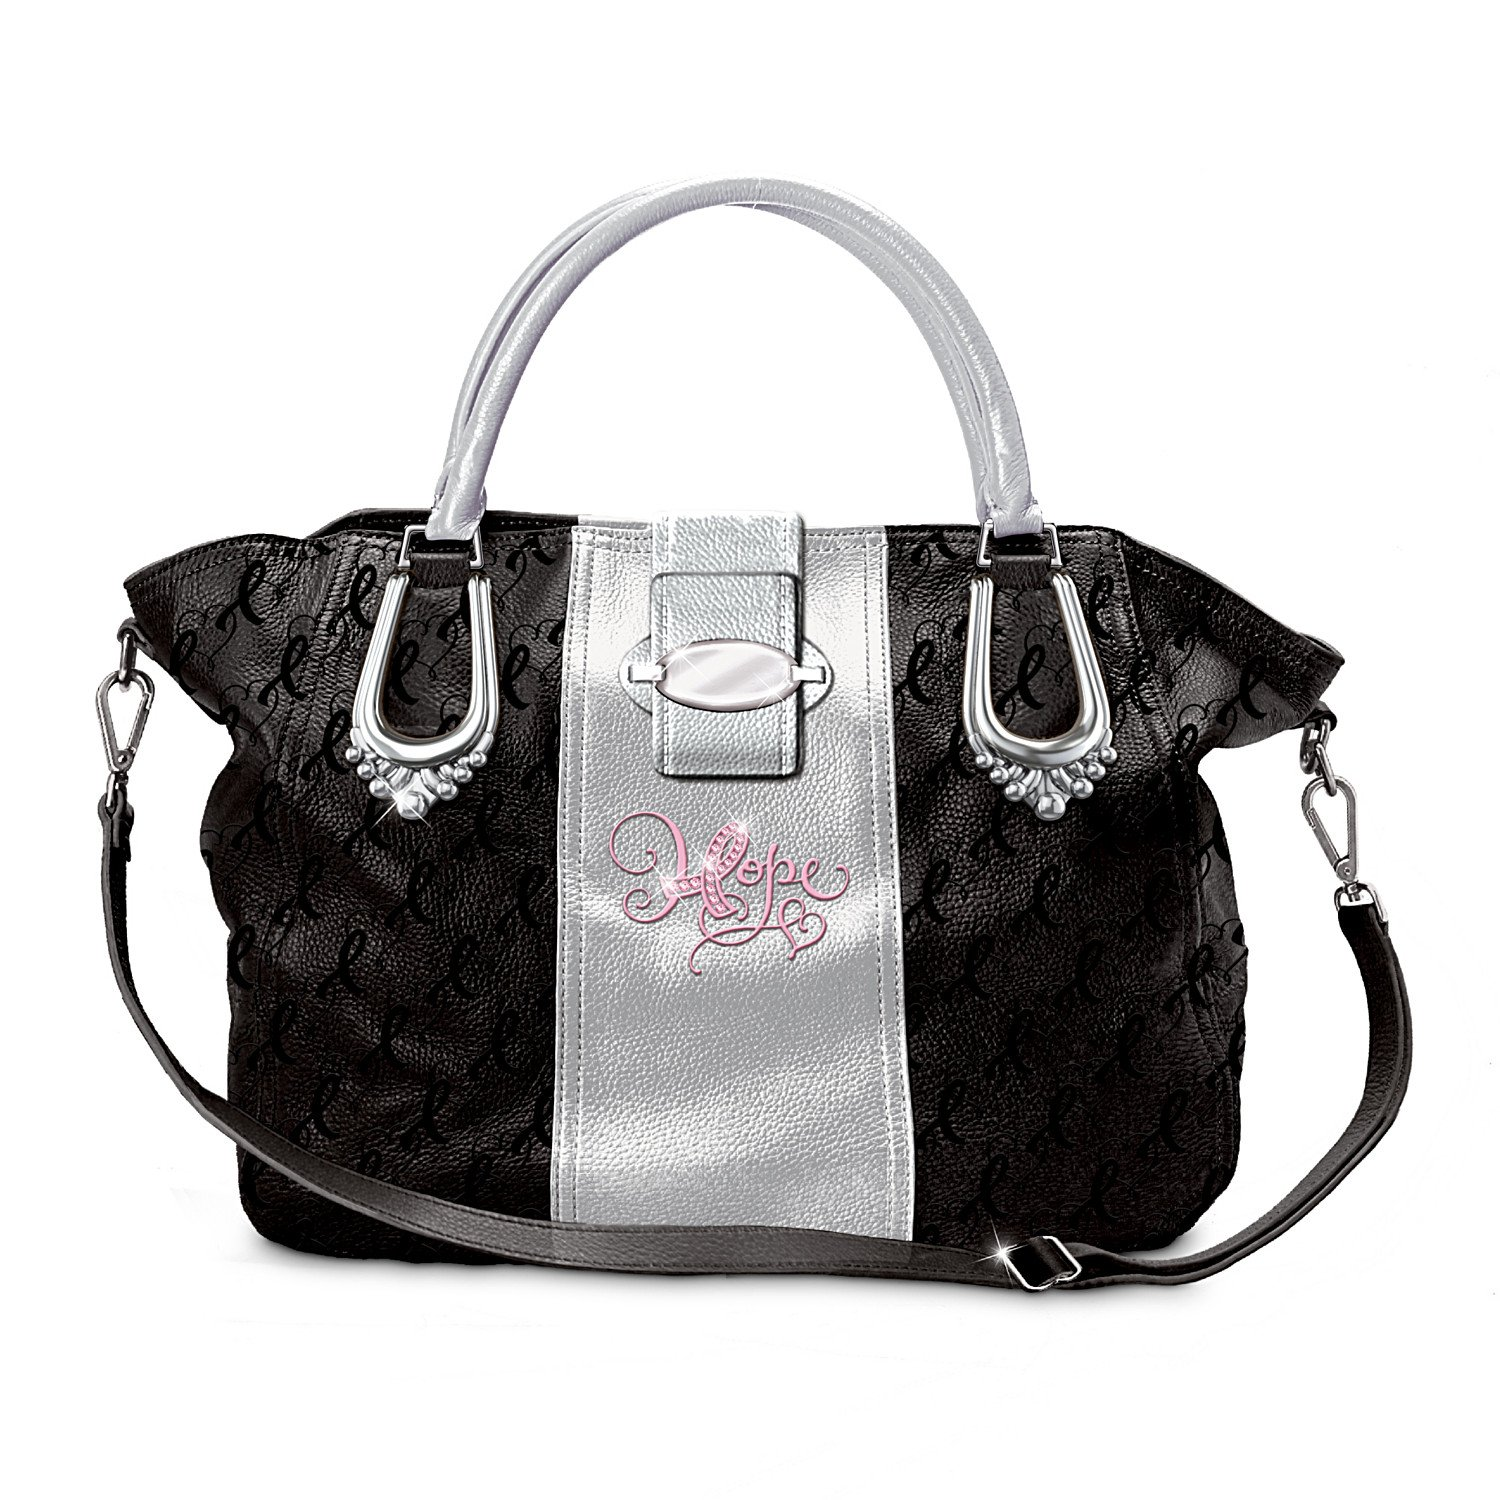 Women's Faux Leather Handbag: Ribbons Of Hope by The Bradford Exchange